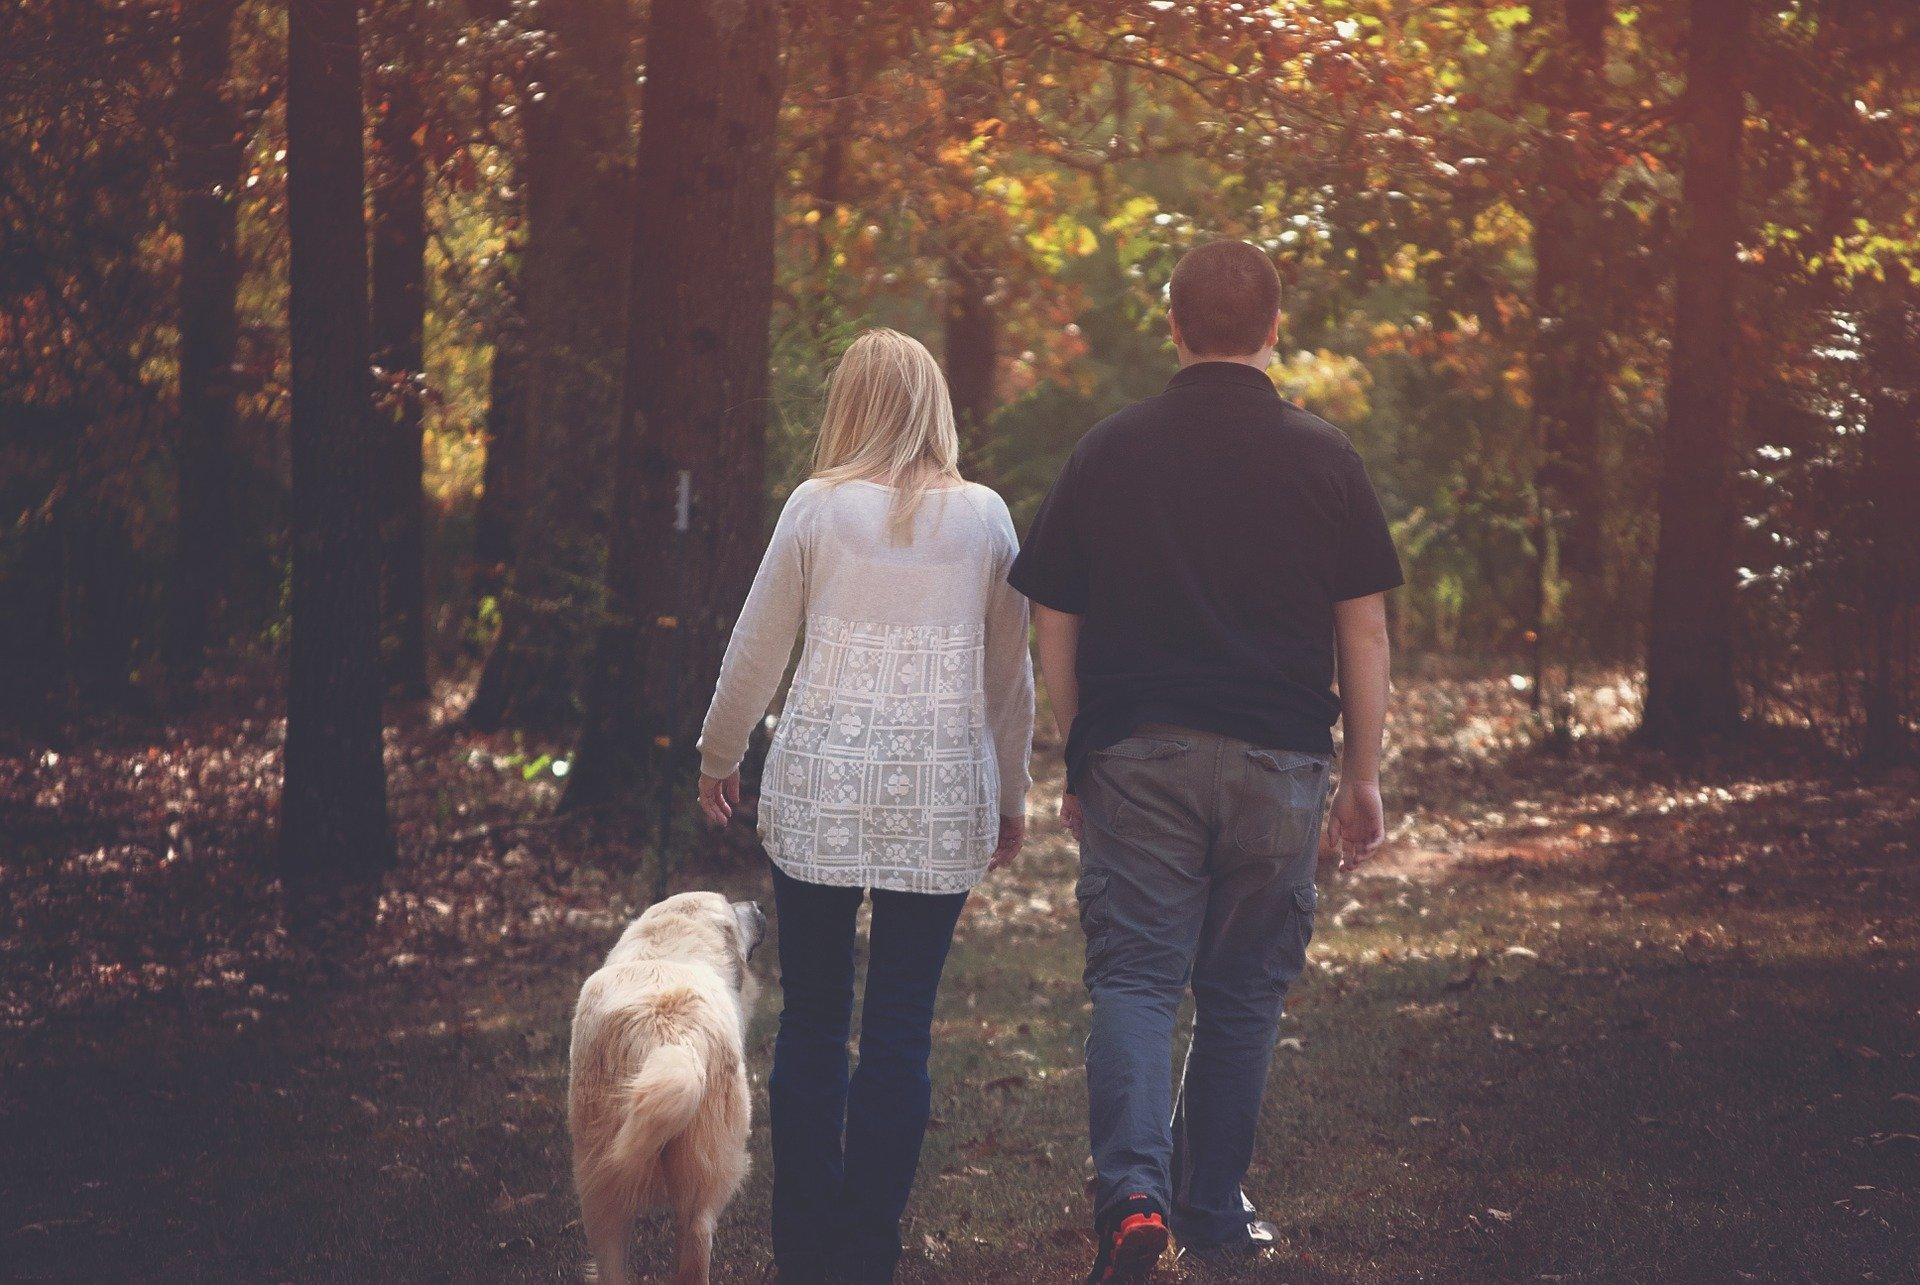 Dog walking with his family   Source: Pixabay